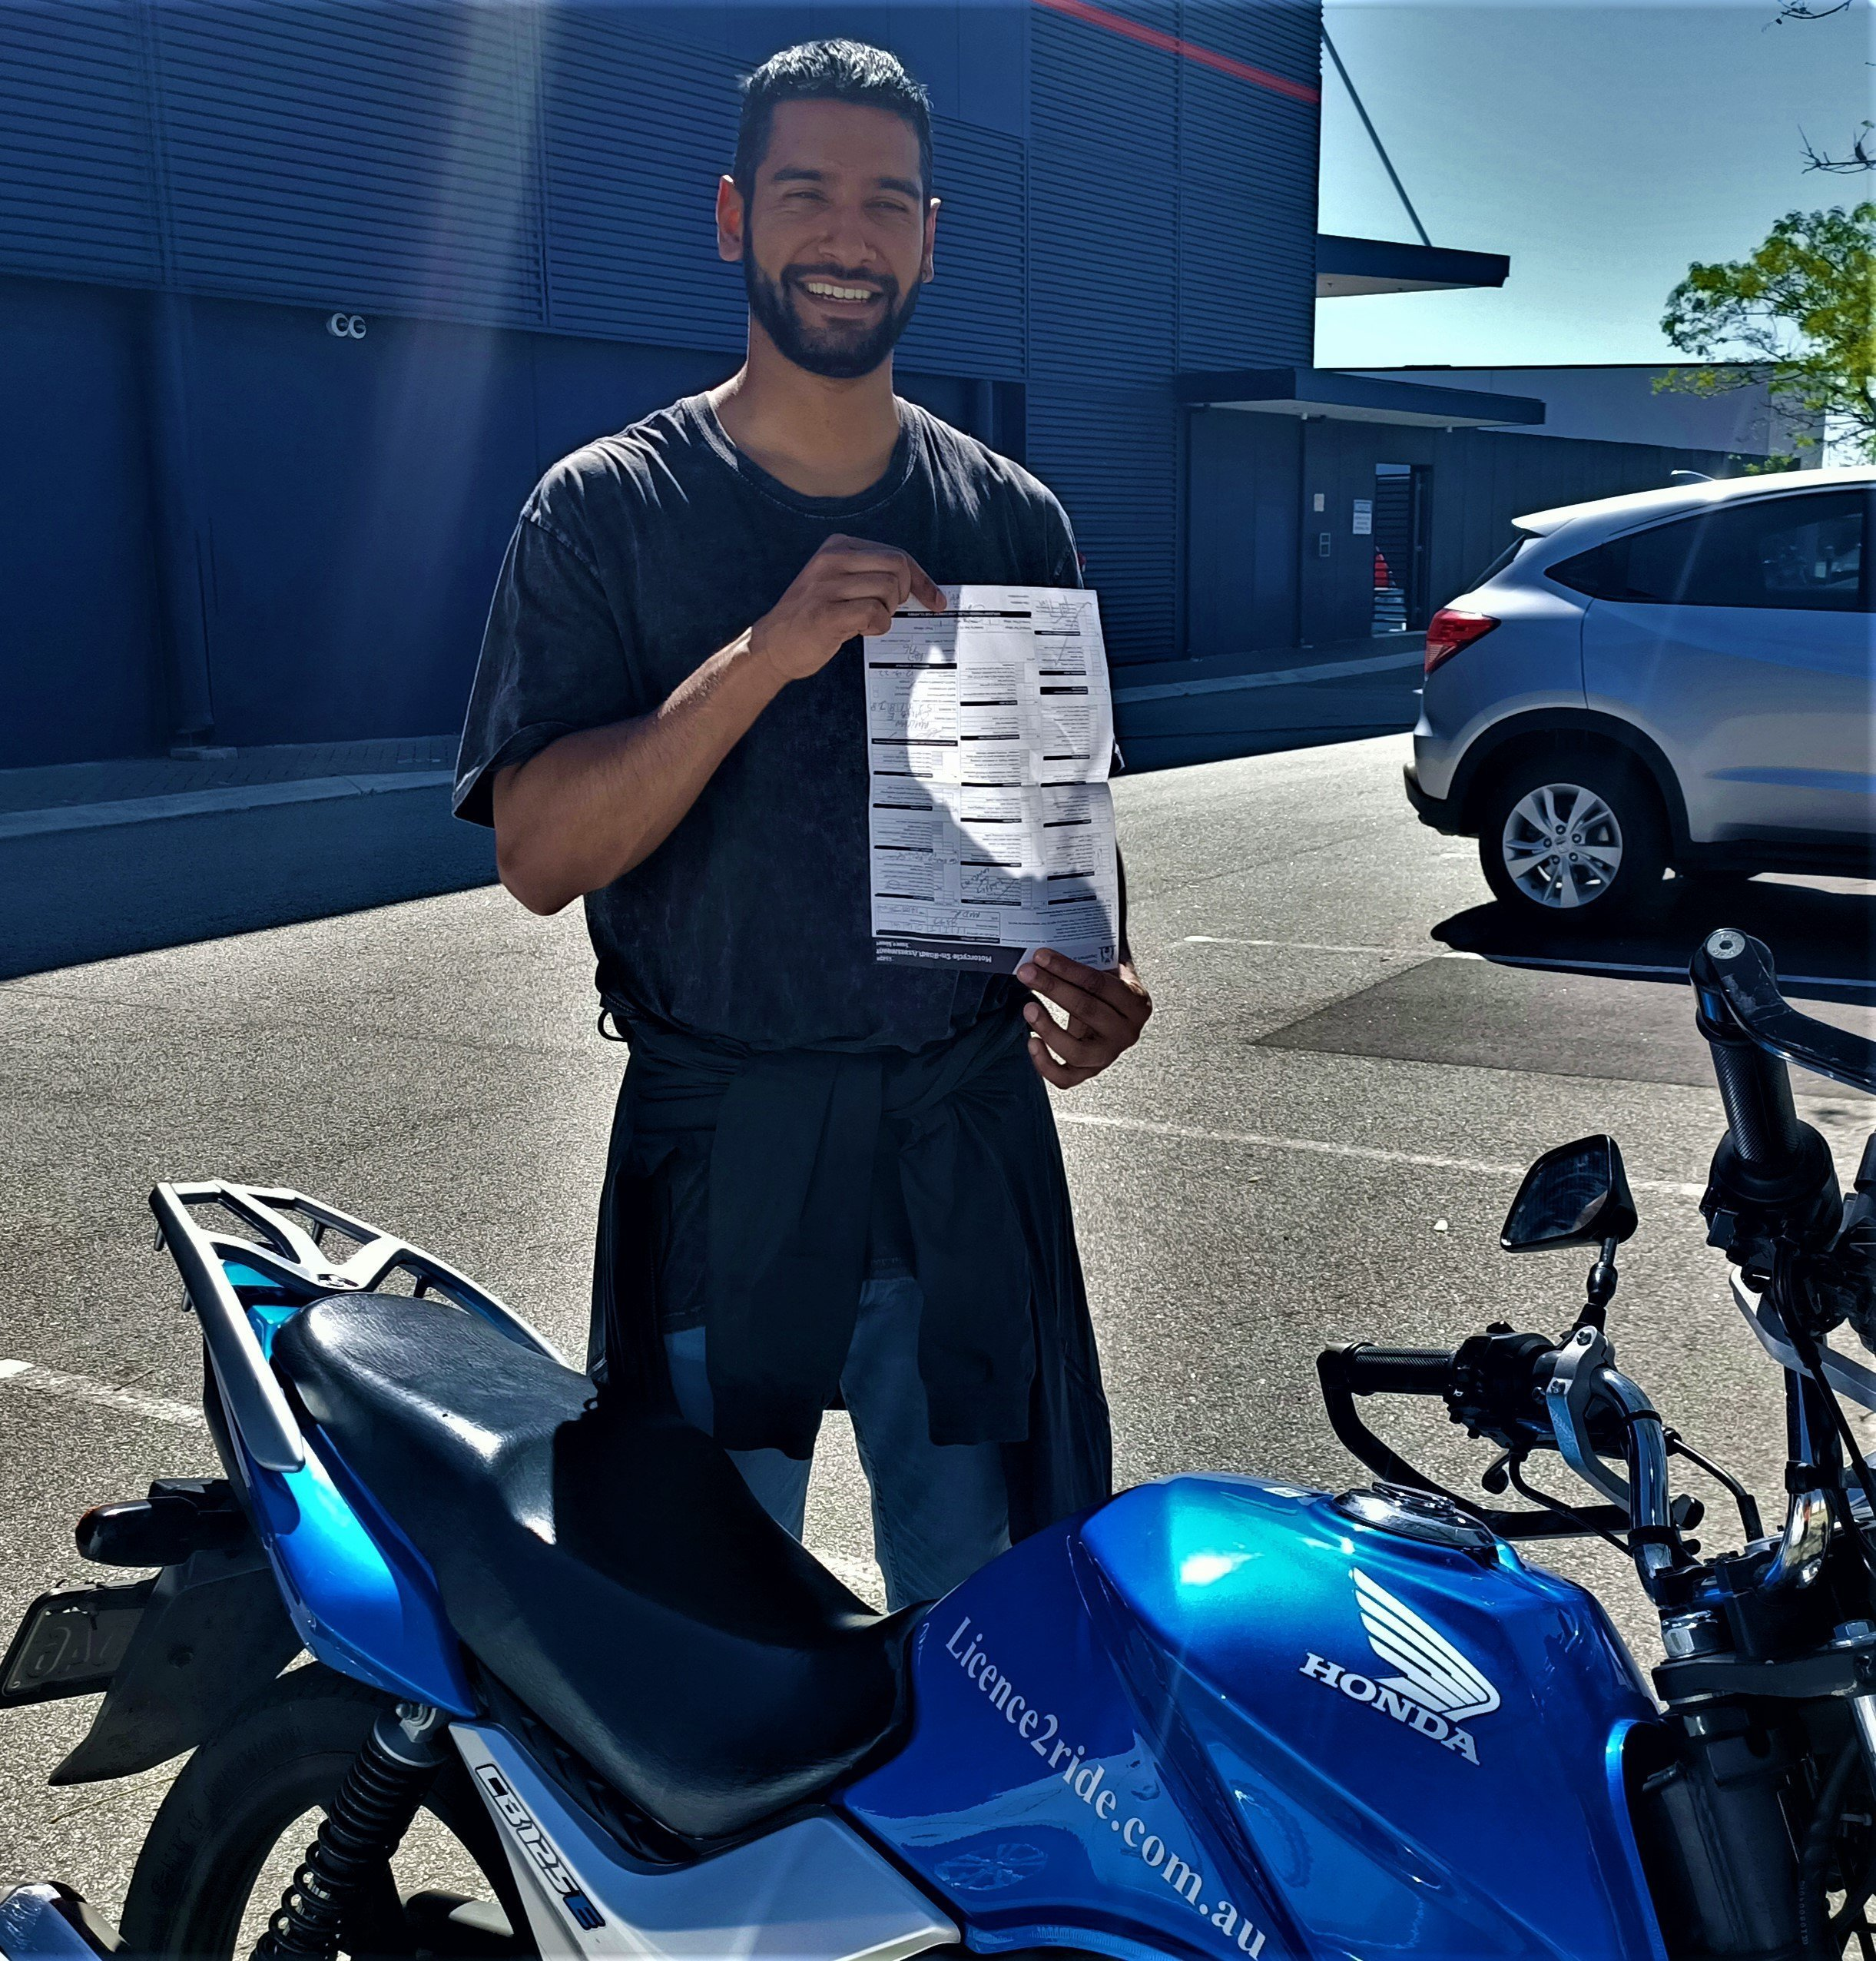 Motorcycle Lessons Perth 'Licence 2 Ride'